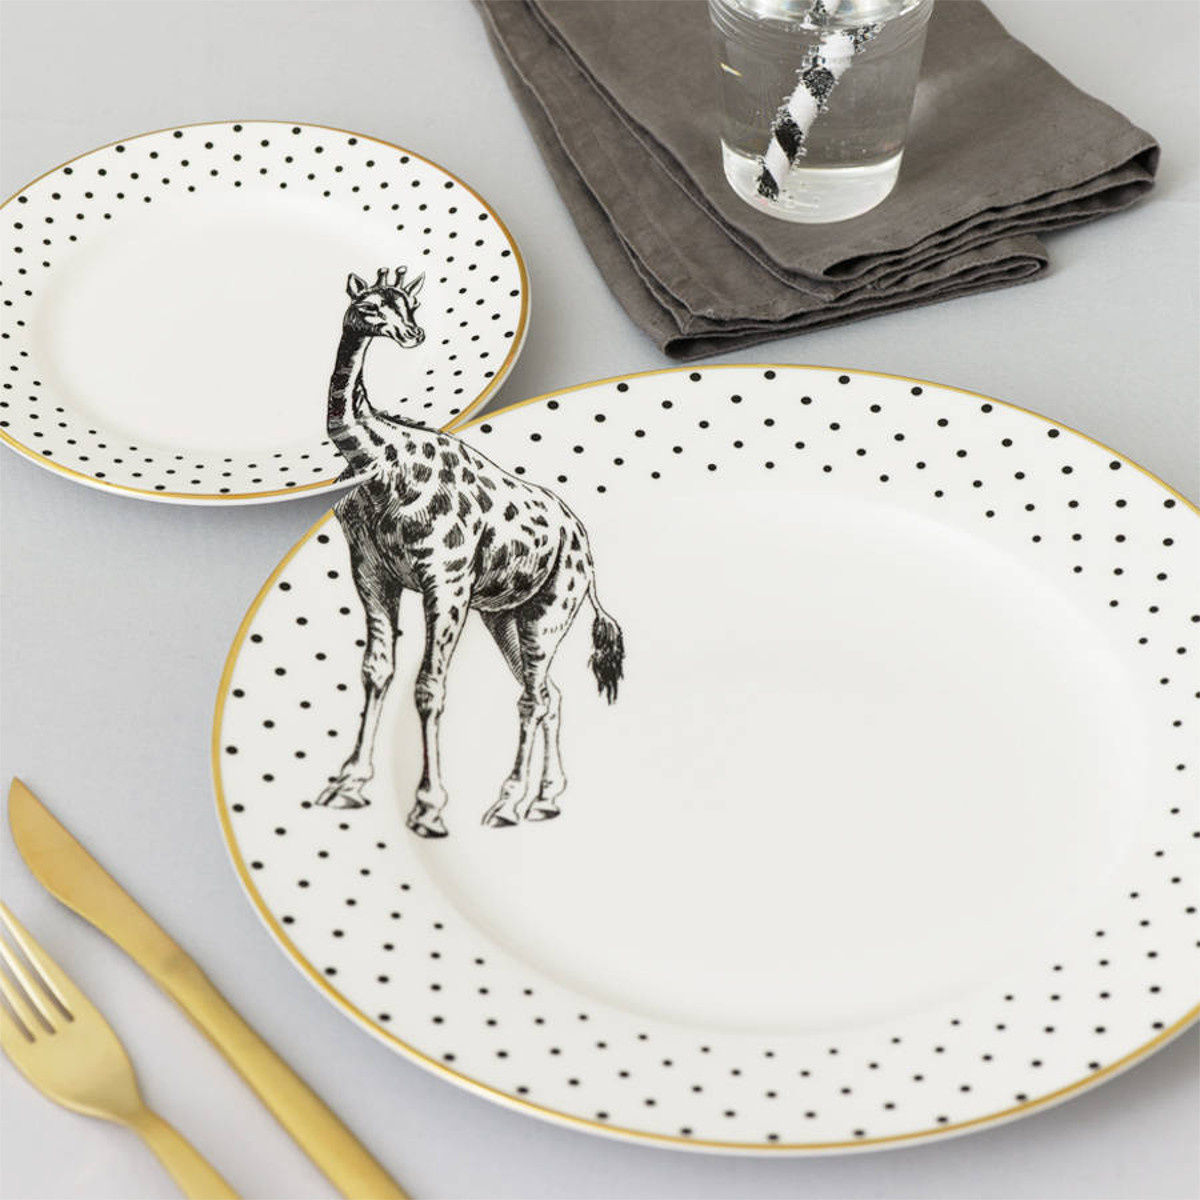 Yvonne Ellen Yvonne Ellen London Monochrome Set of1 Dinner Plate Ø 26,5 cm and 1 Side Plate Ø 16 cm - Giraffe - Bone China - In Beautiful Giftbox